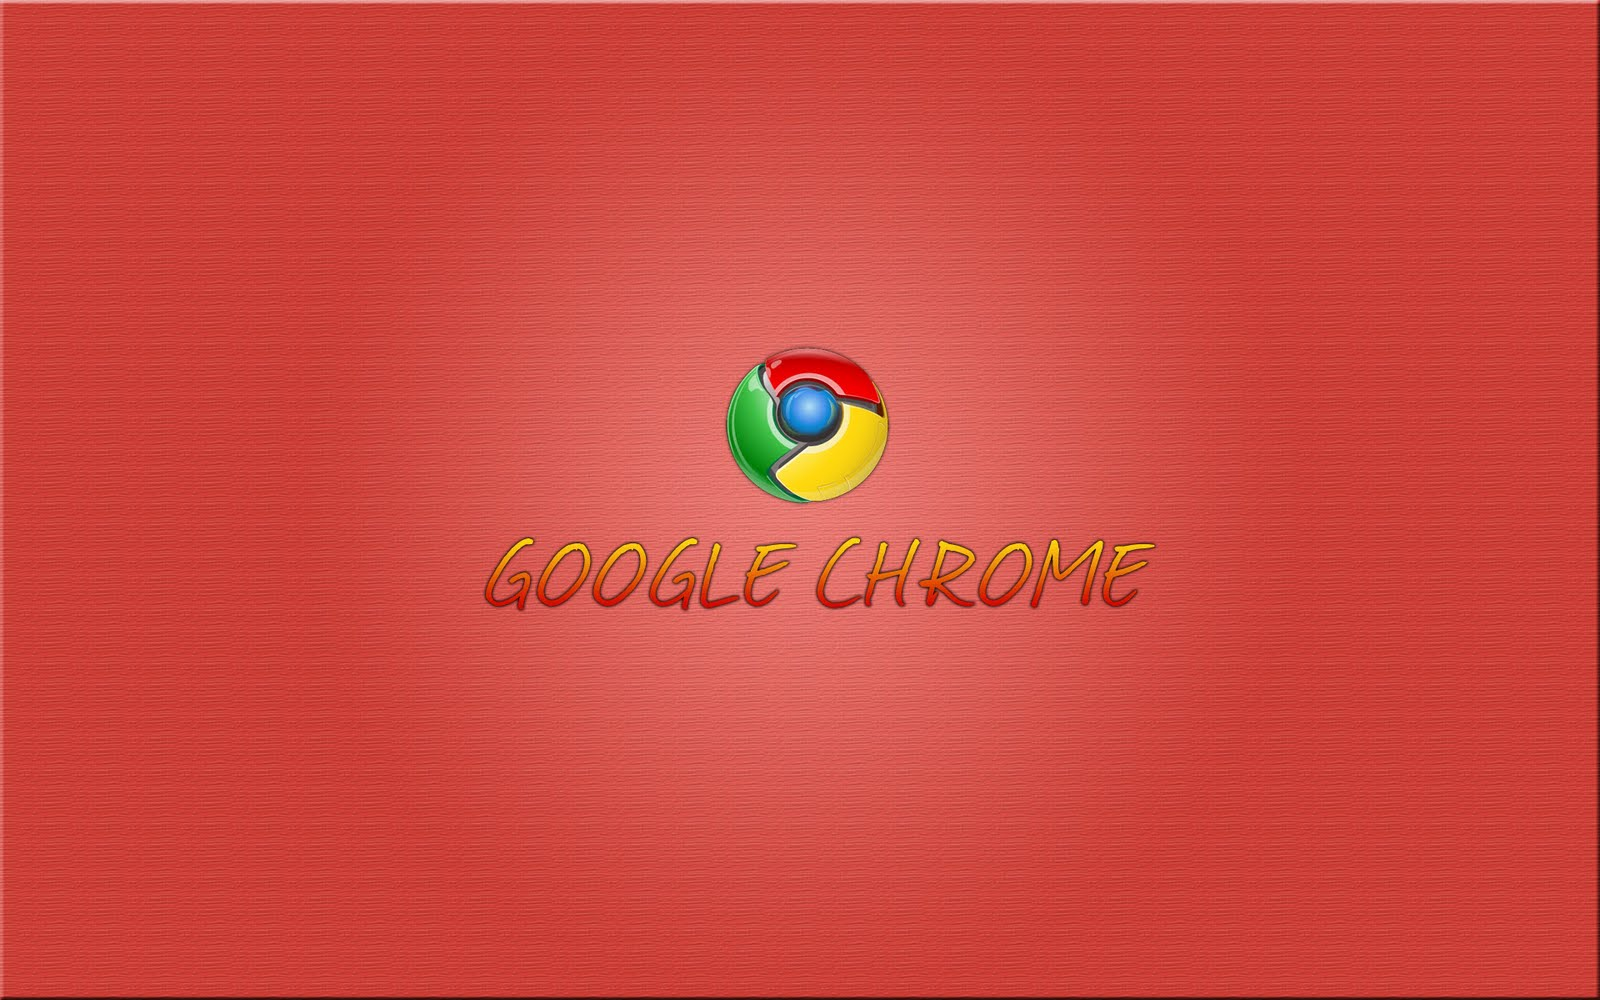 rendez vous comics google chrome wallpaper